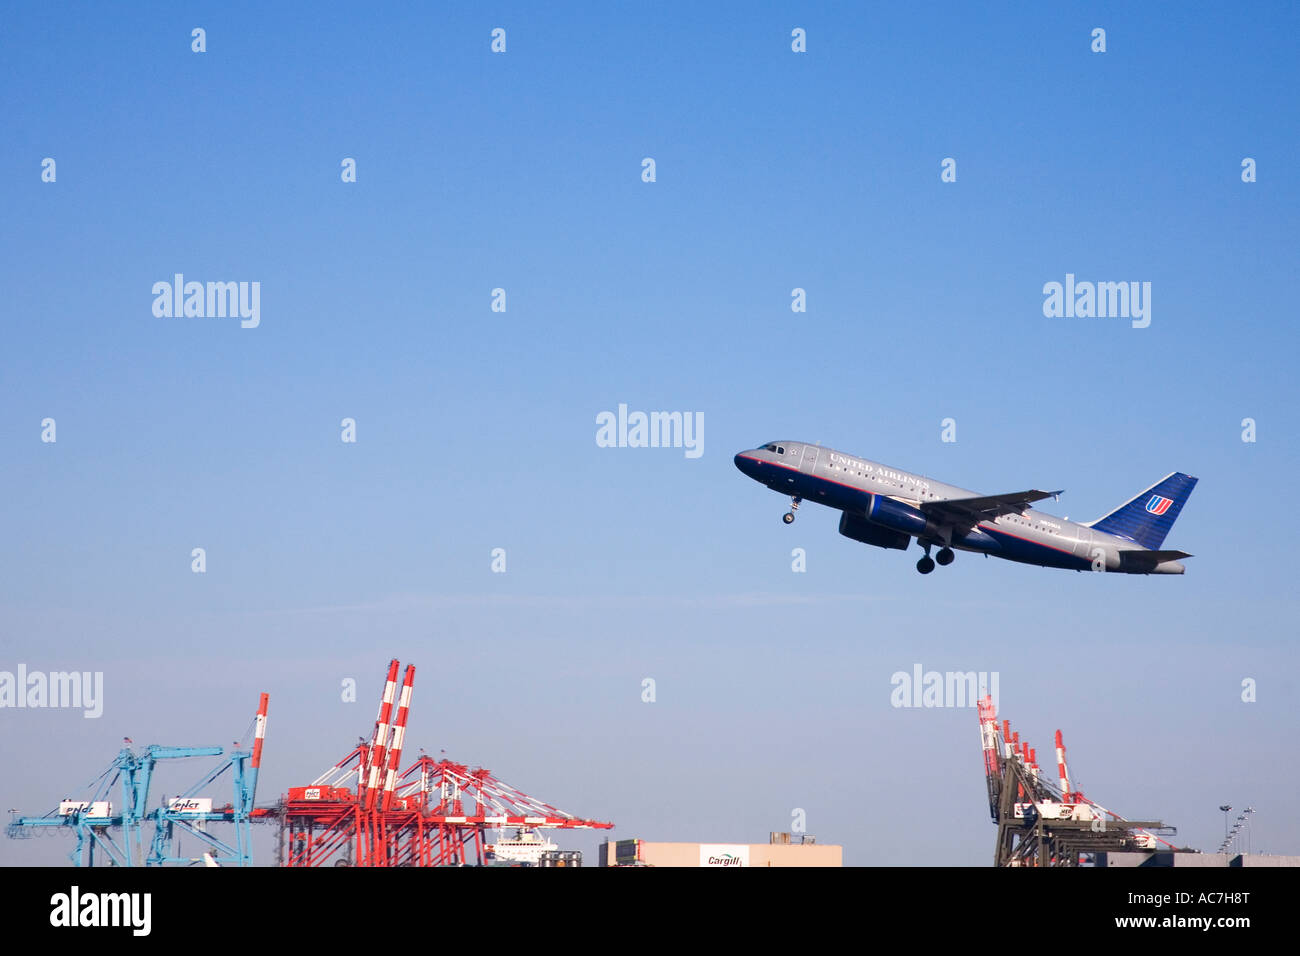 'United Airlines' passenger jet aircraft airplane takes off from Newark International Airport New Jersey - Stock Image